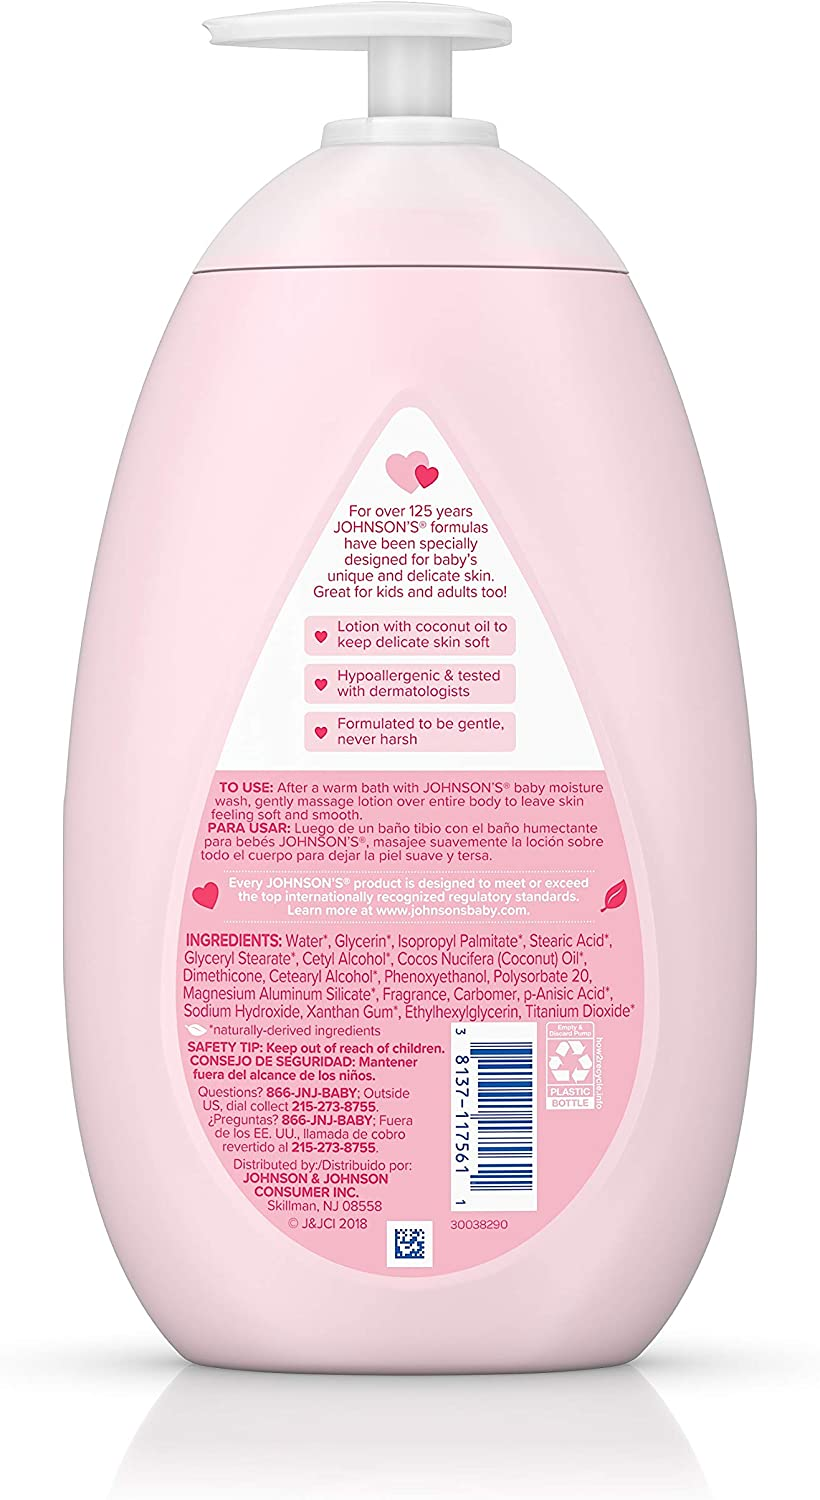 Johnson's Moisturizing Pink Baby Lotion with Coconut Oil, Hypoallergenic and Dermatologist-Tested, 27.1 fl. oz